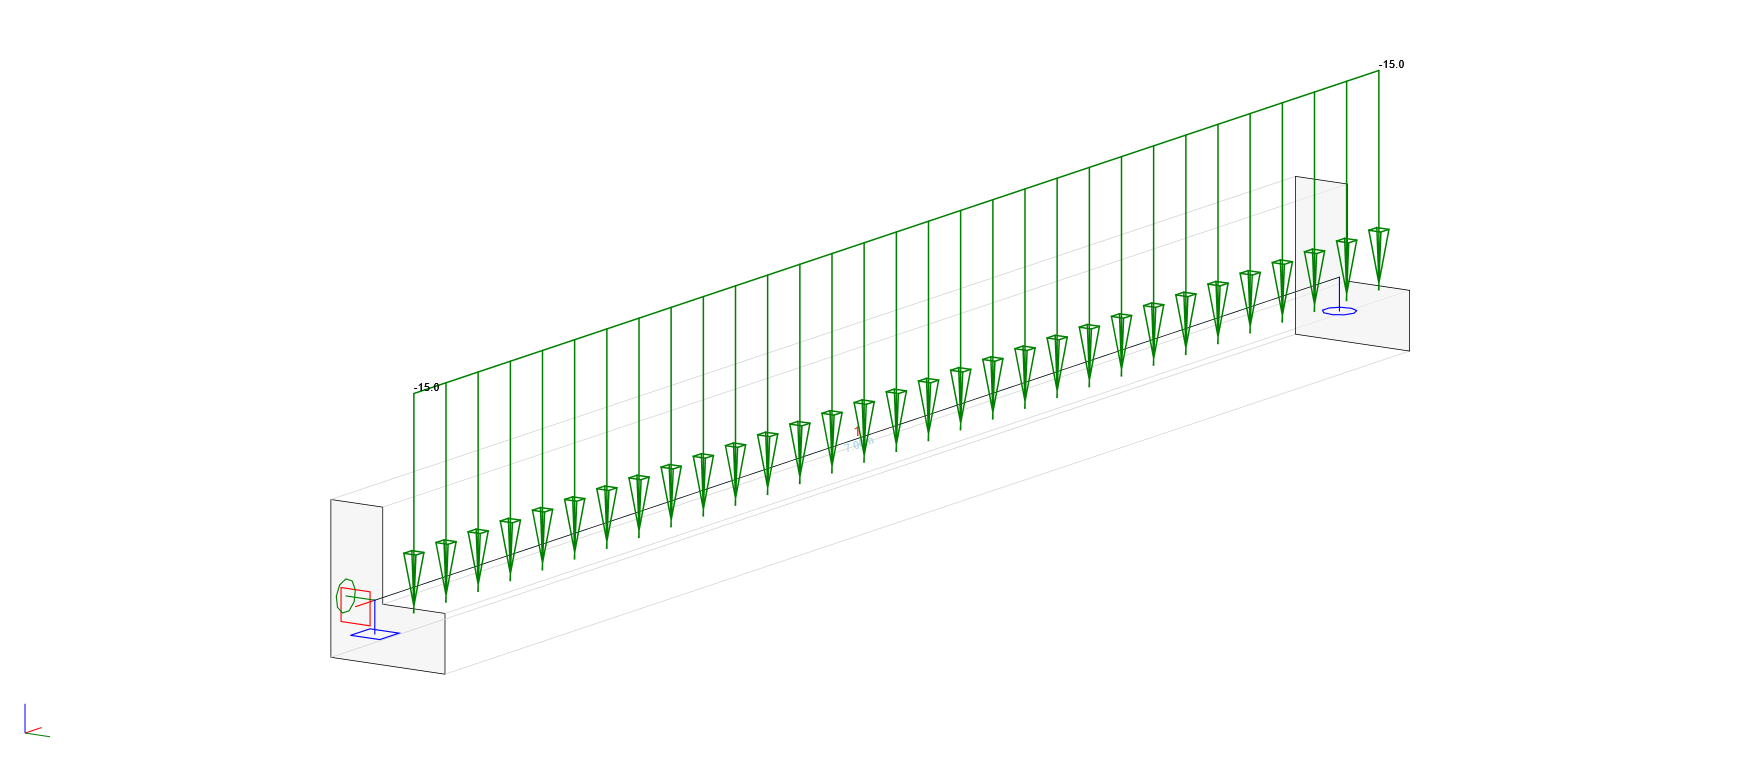 Ledge of a L-shaped beam subjected to the line loads